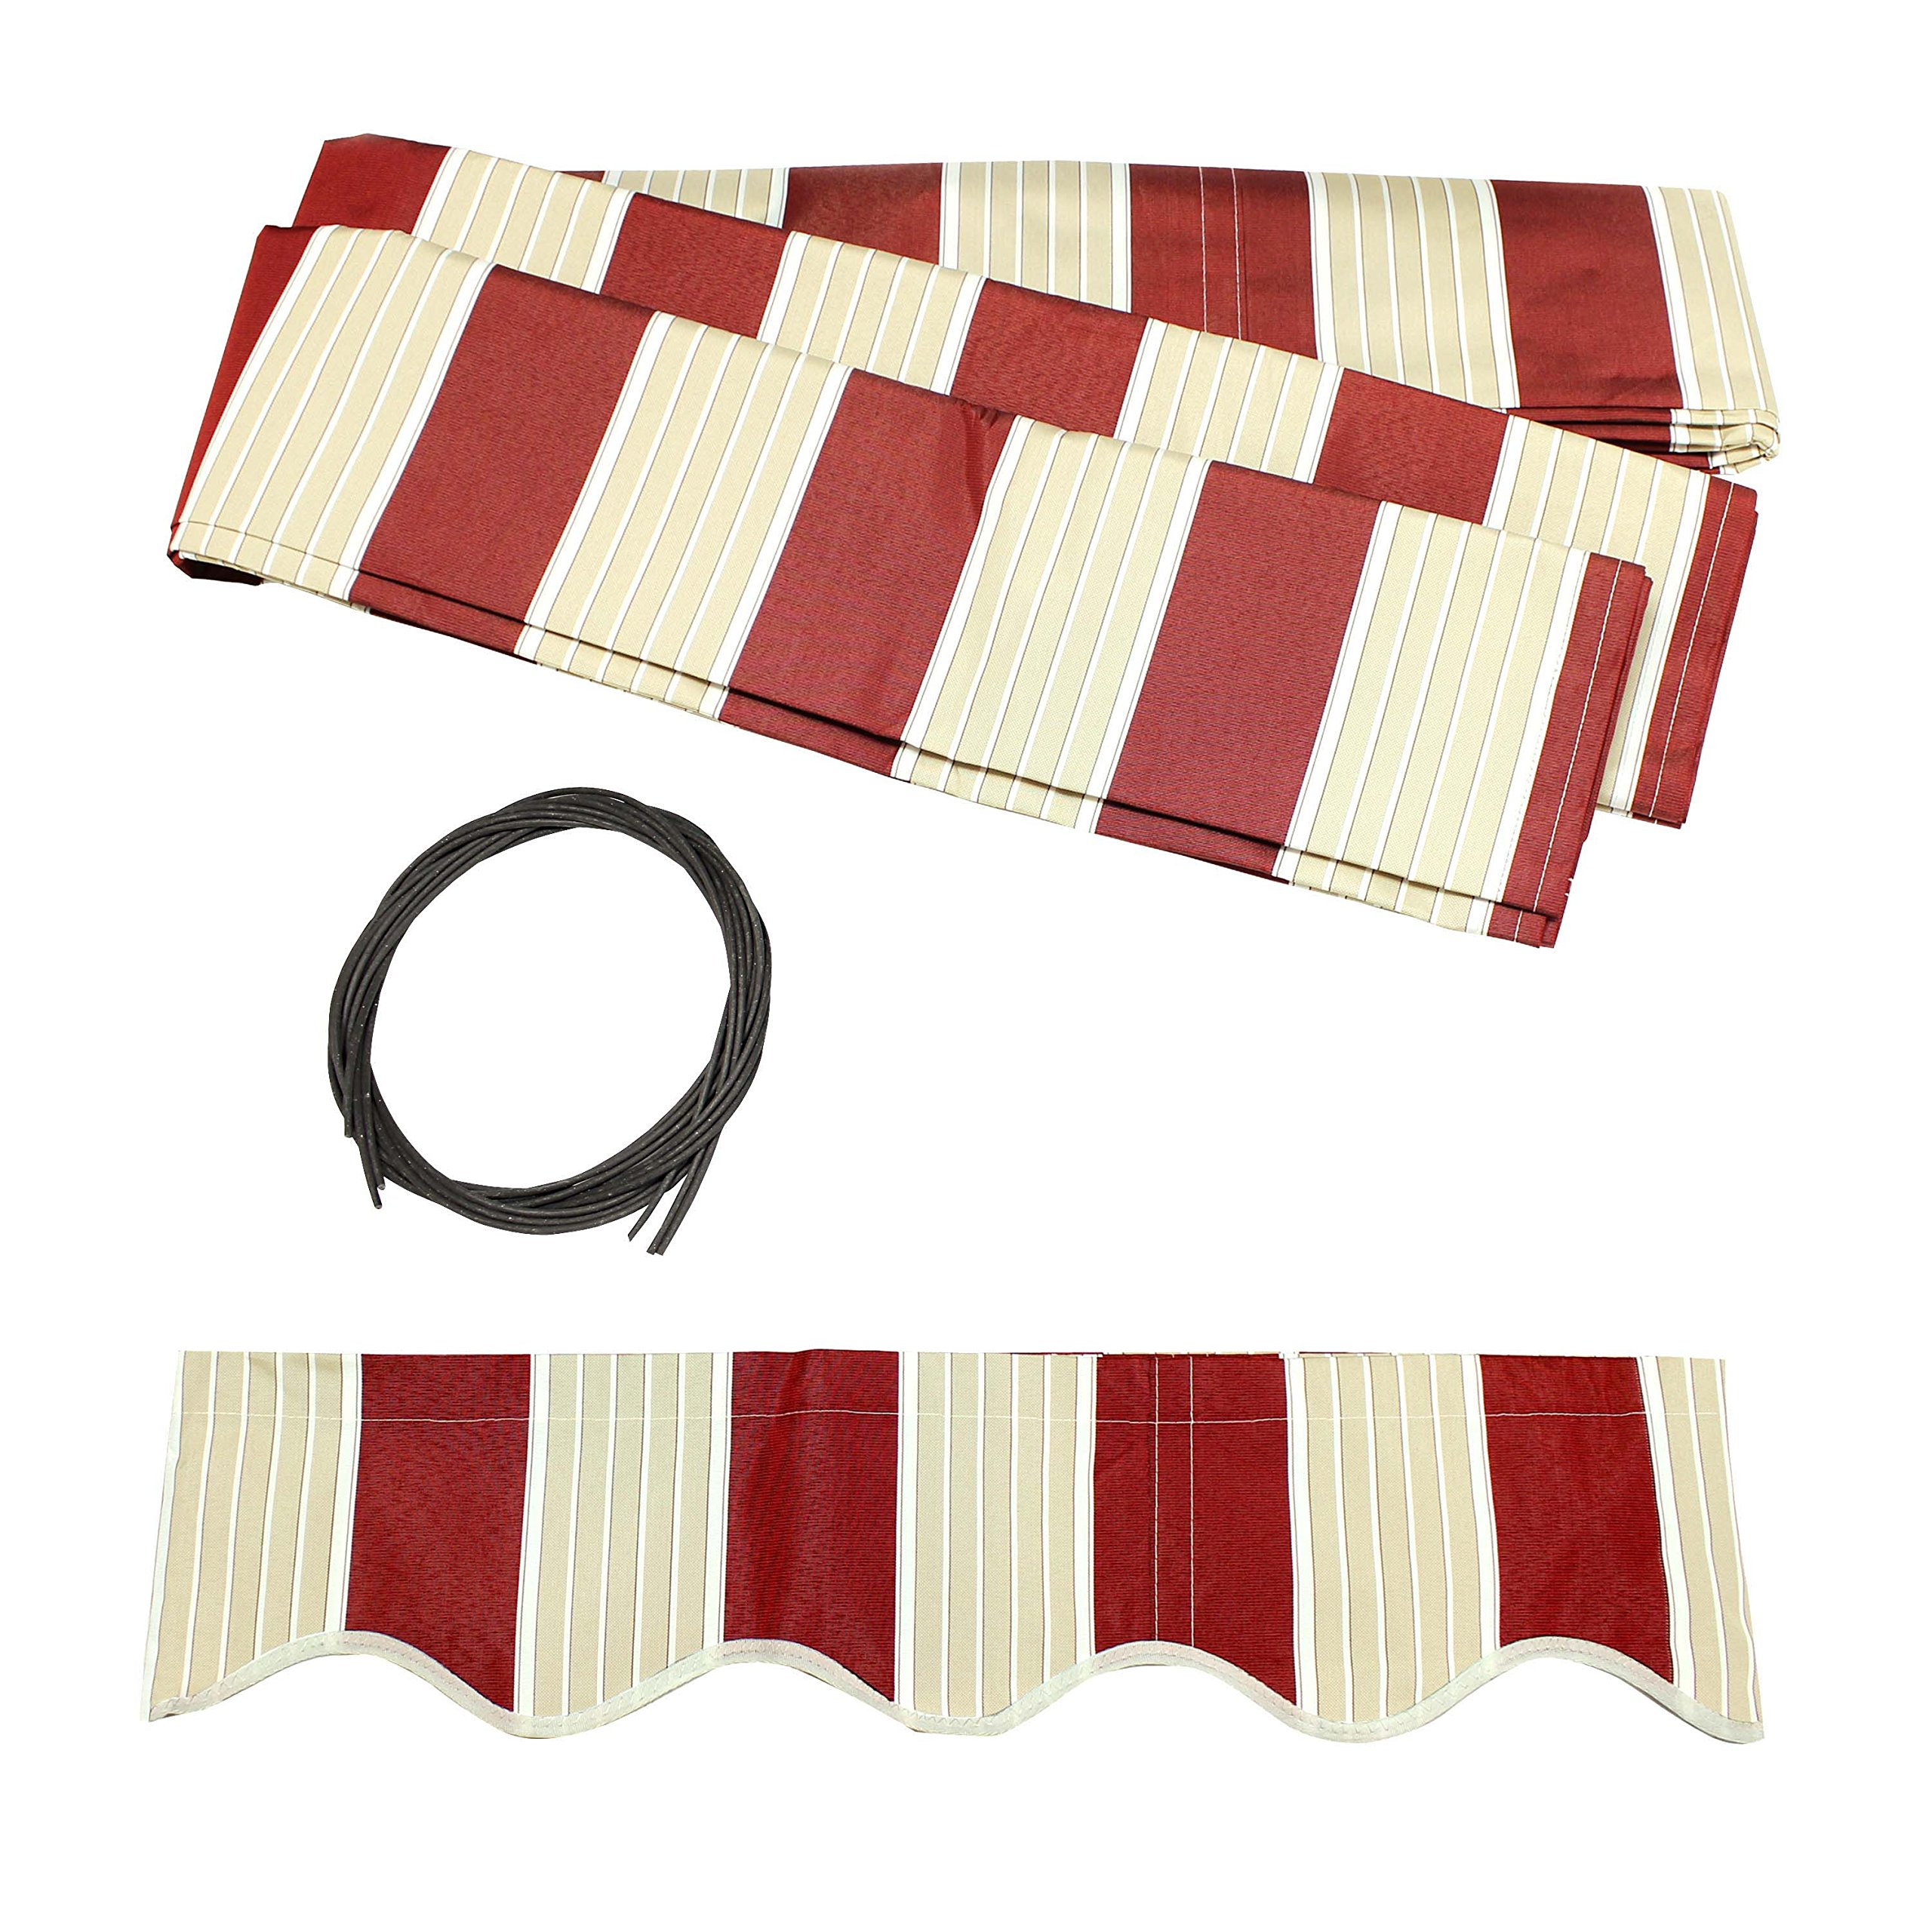 ALEKO FAB16X10MSTRED19 Retractable Awning Fabric Replacement 16 x 10 Feet Multi-Stripe Red